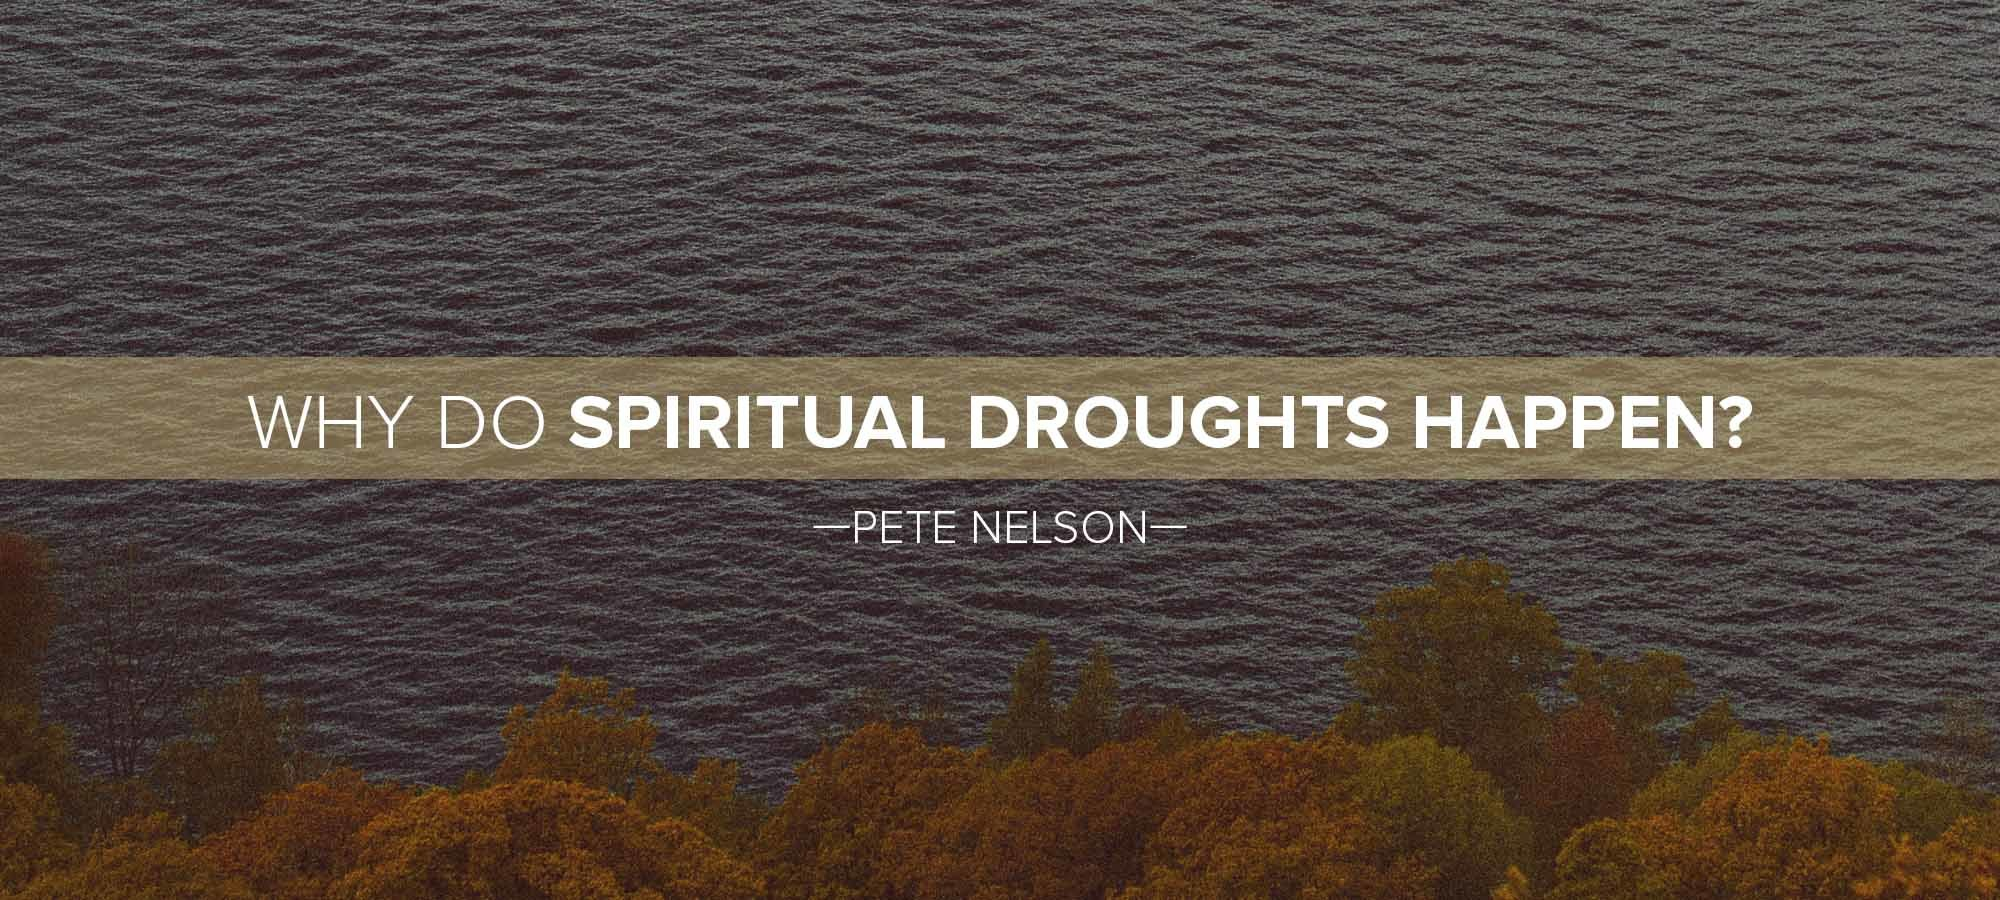 Why Do Spiritual Droughts Happen?